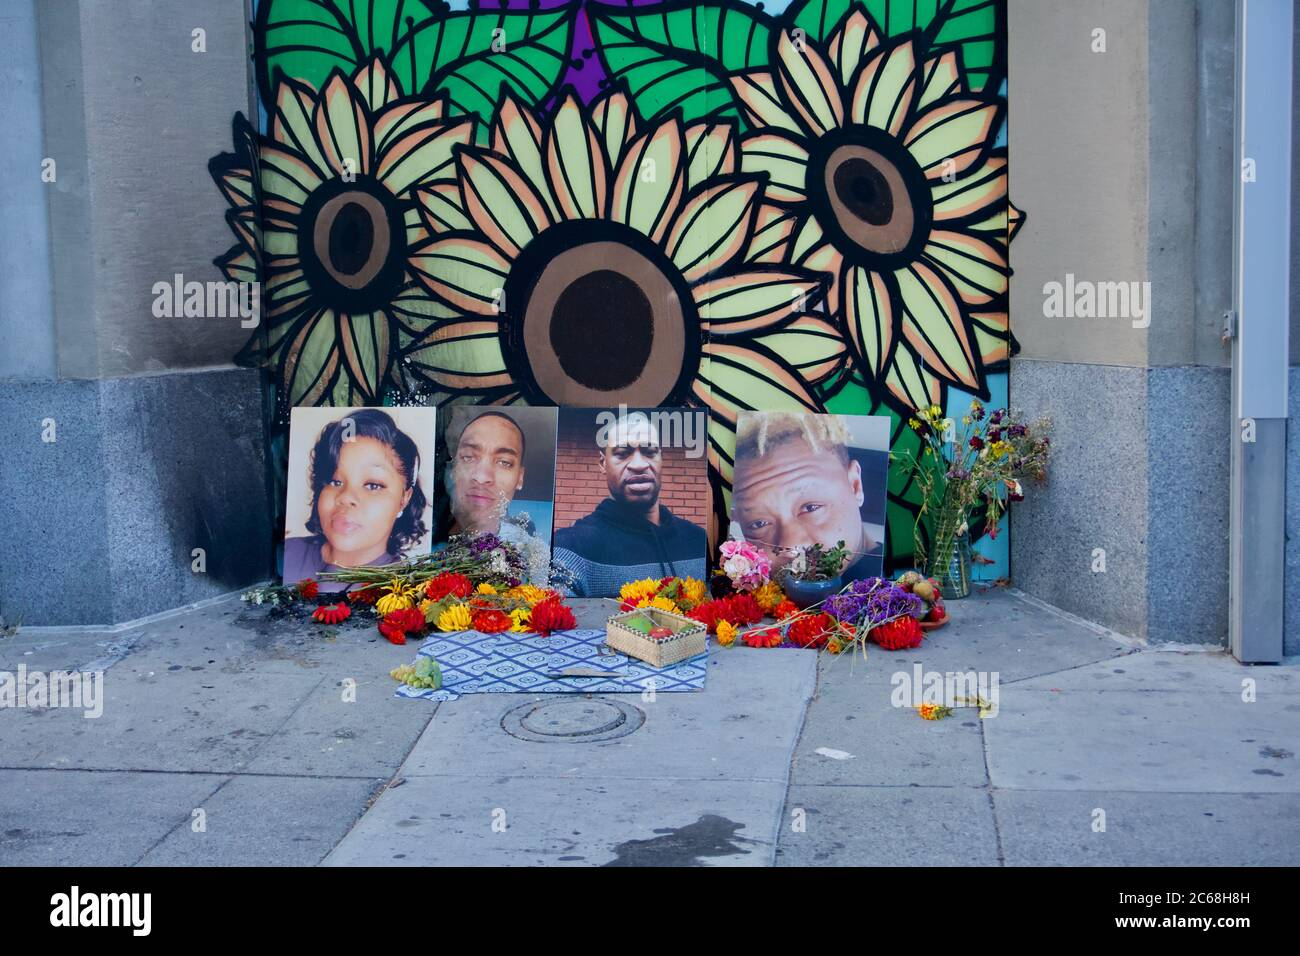 Black Lives Matter Street Art And Memorial Shrine To Breonna Taylor George Floyd And Others Killed By Police Brutality Oakland Ca Usa Stock Photo Alamy